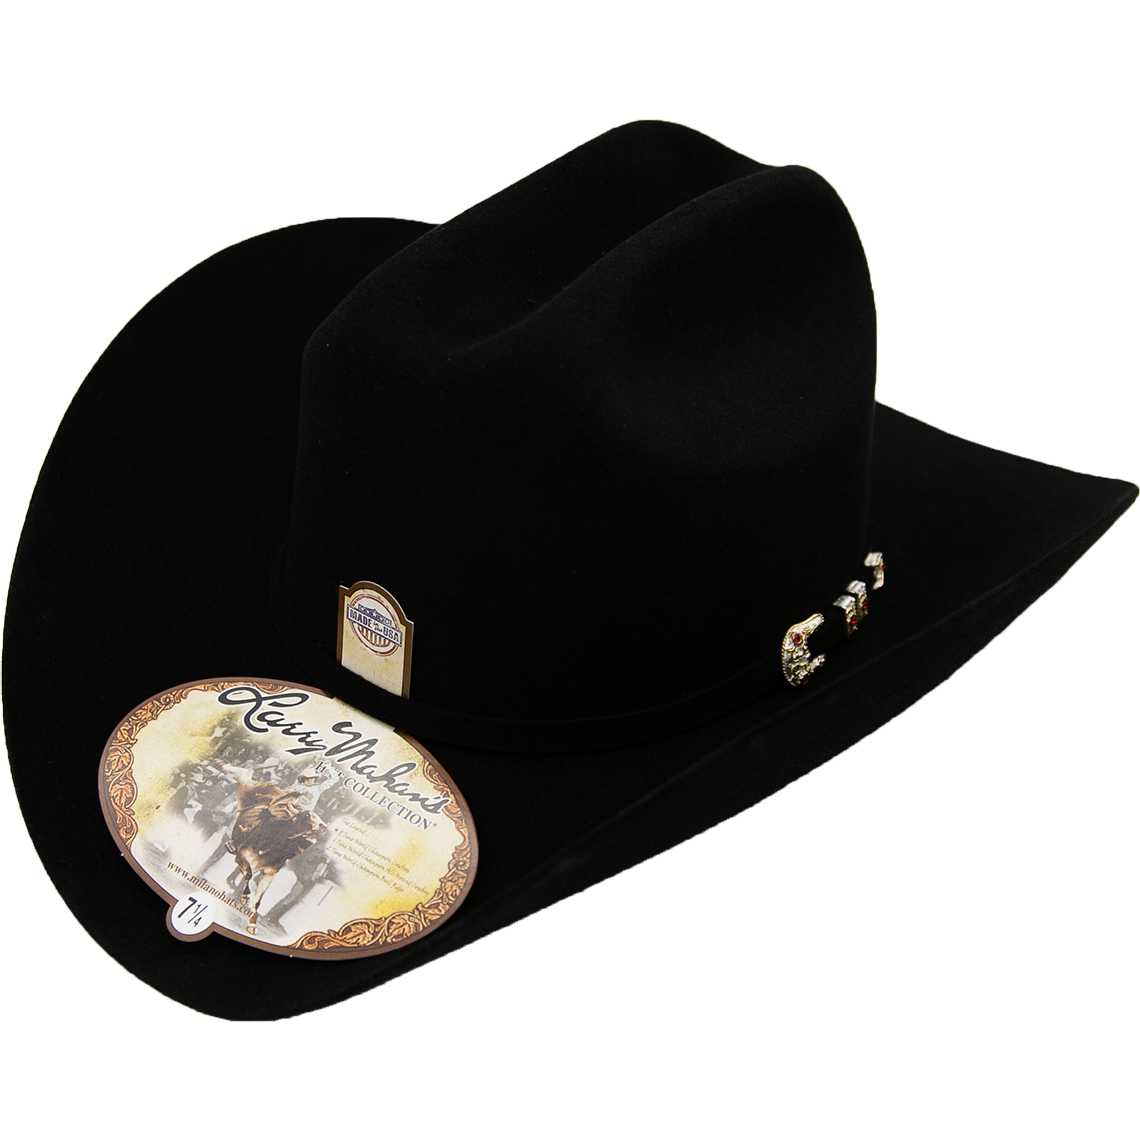 d5949ea5be6cc 10x Larry Mahan Hat Tucson Black Fur Felt Cowboy Hat For Sale Online ...